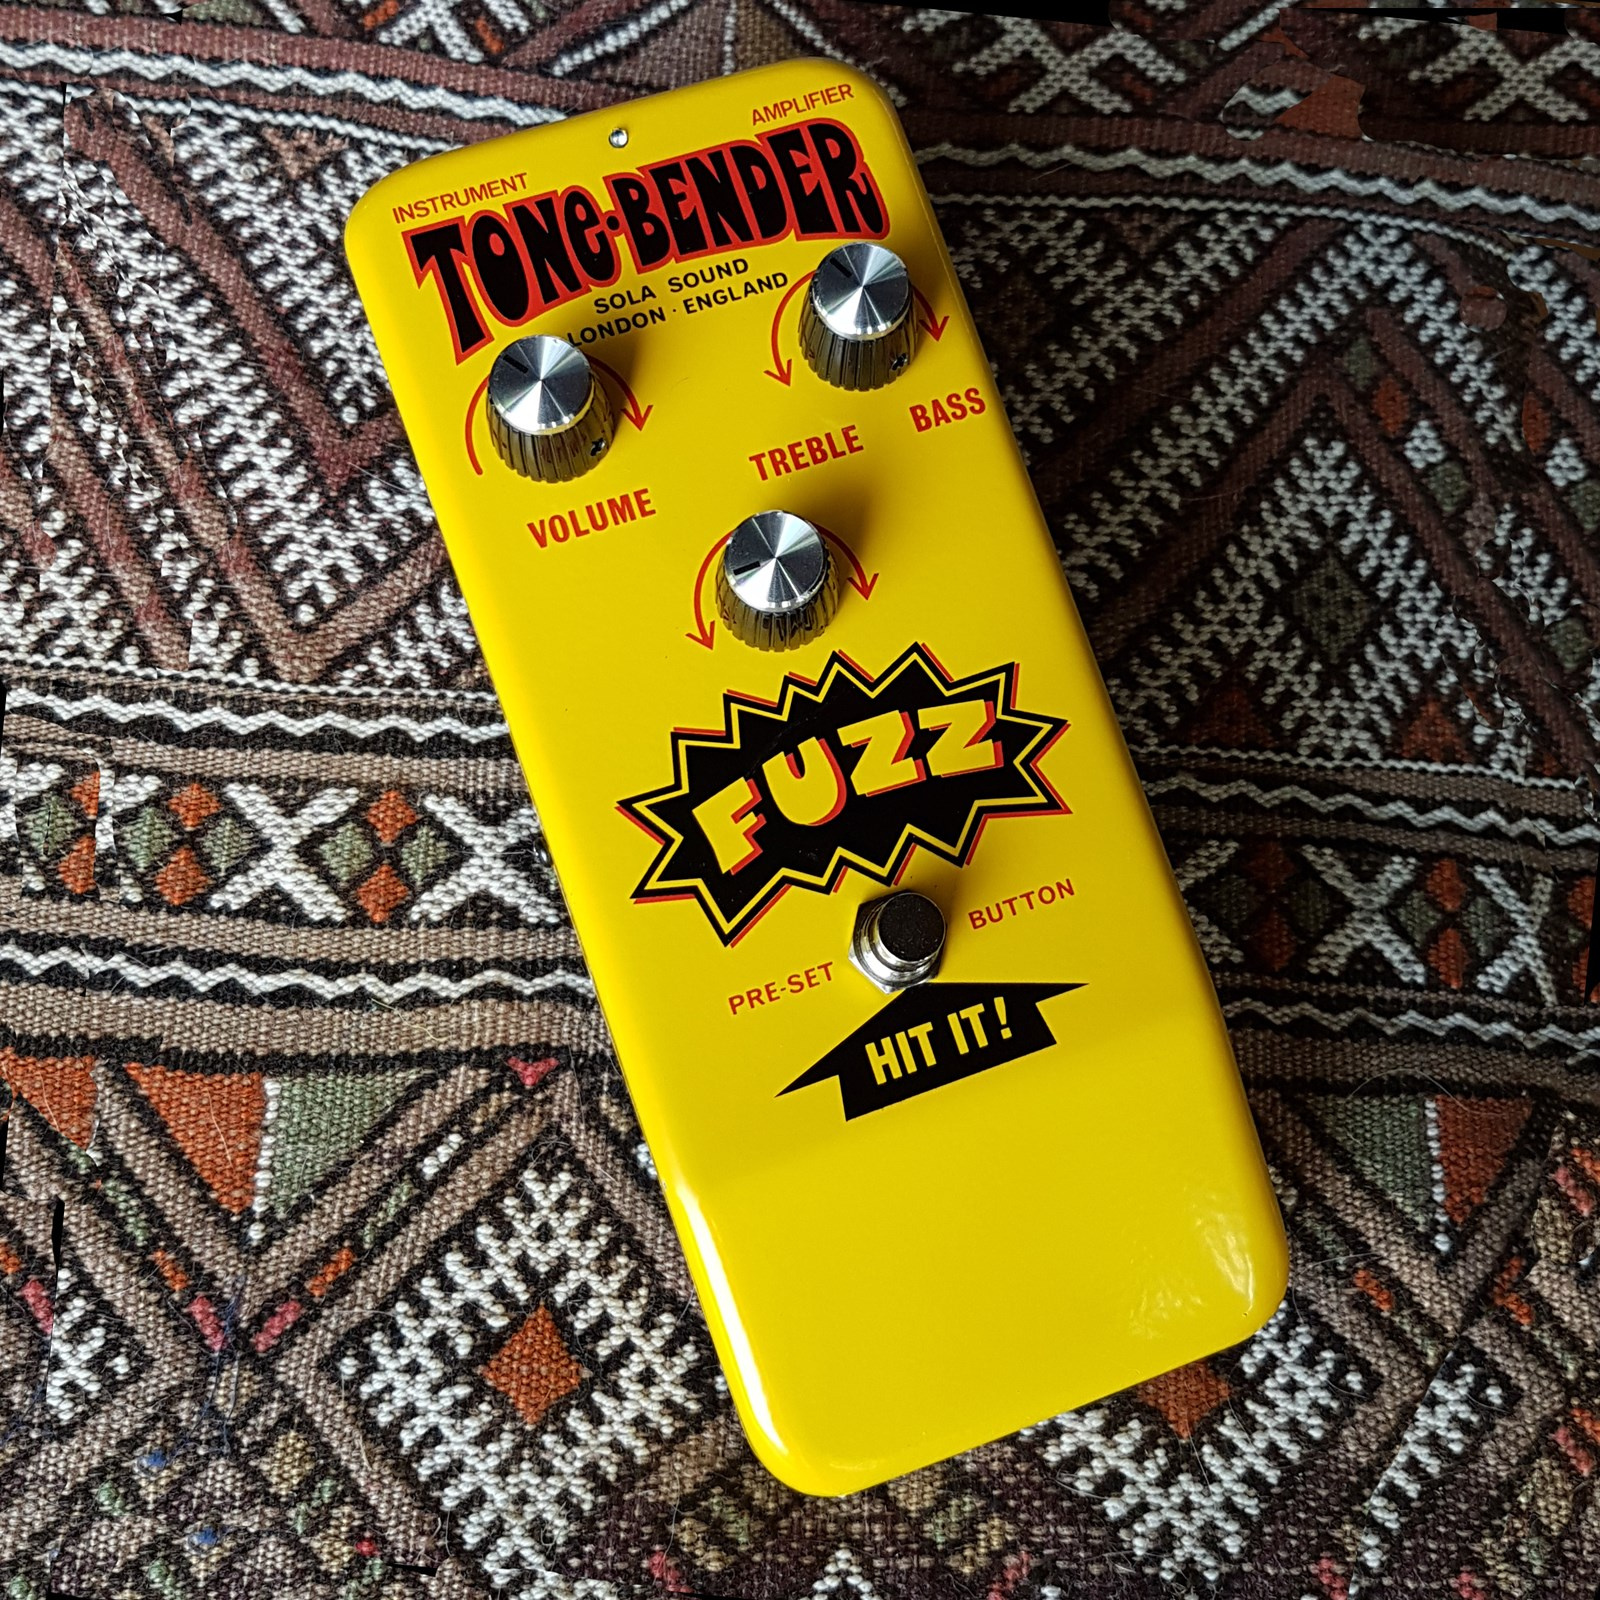 The Yellow Hybrid OC140 Tone Bender by jake r ....